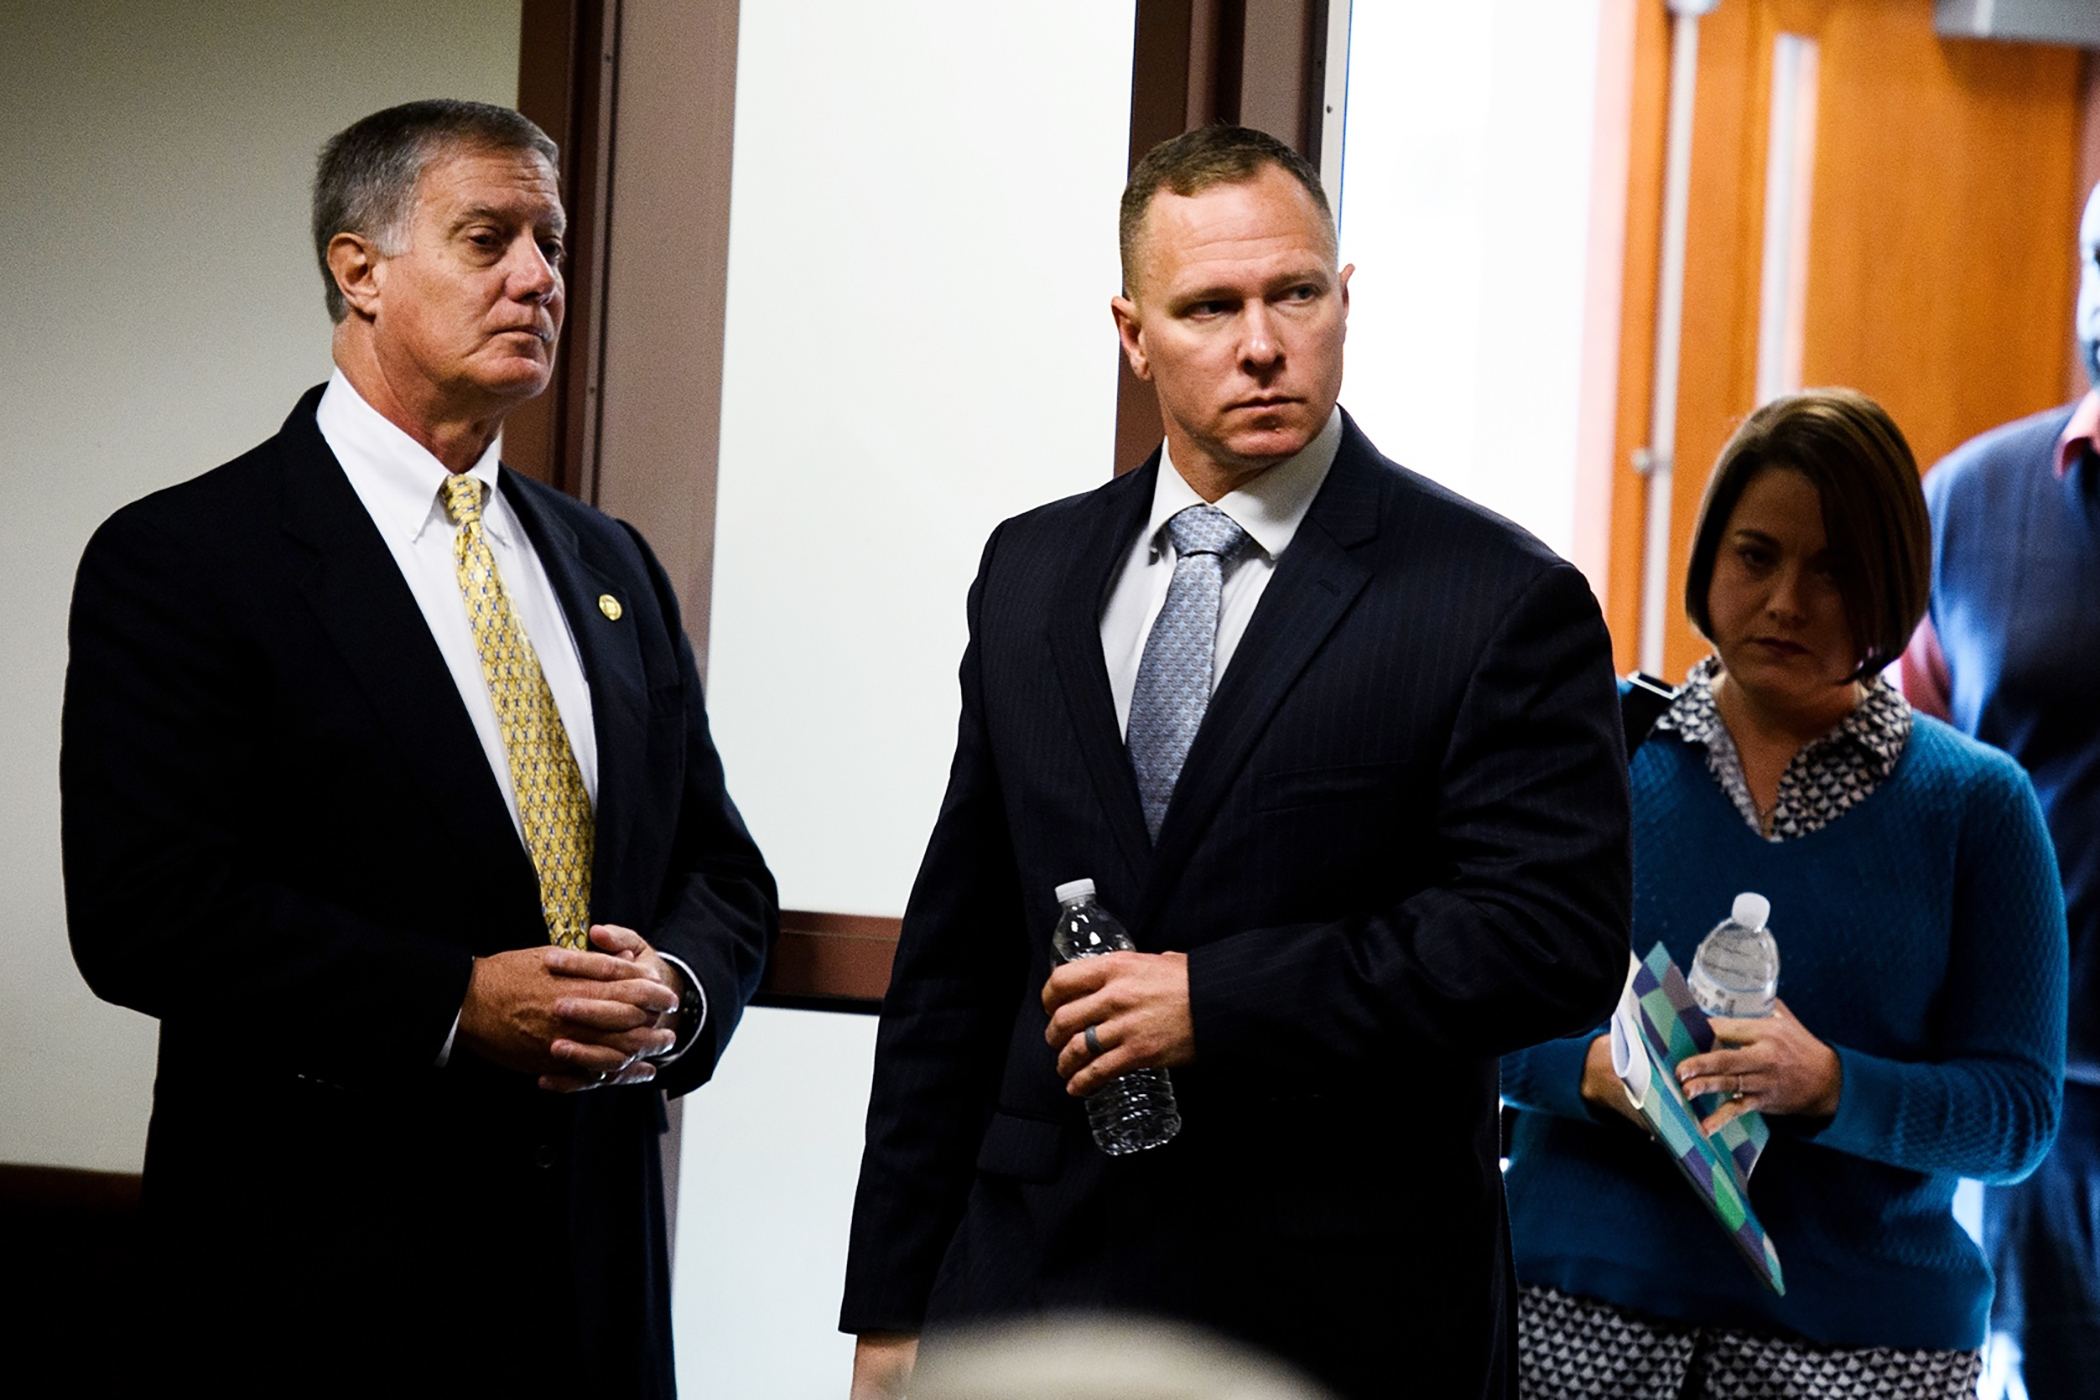 Brazen, naked corruption gets SC sheriff 1 year in prison